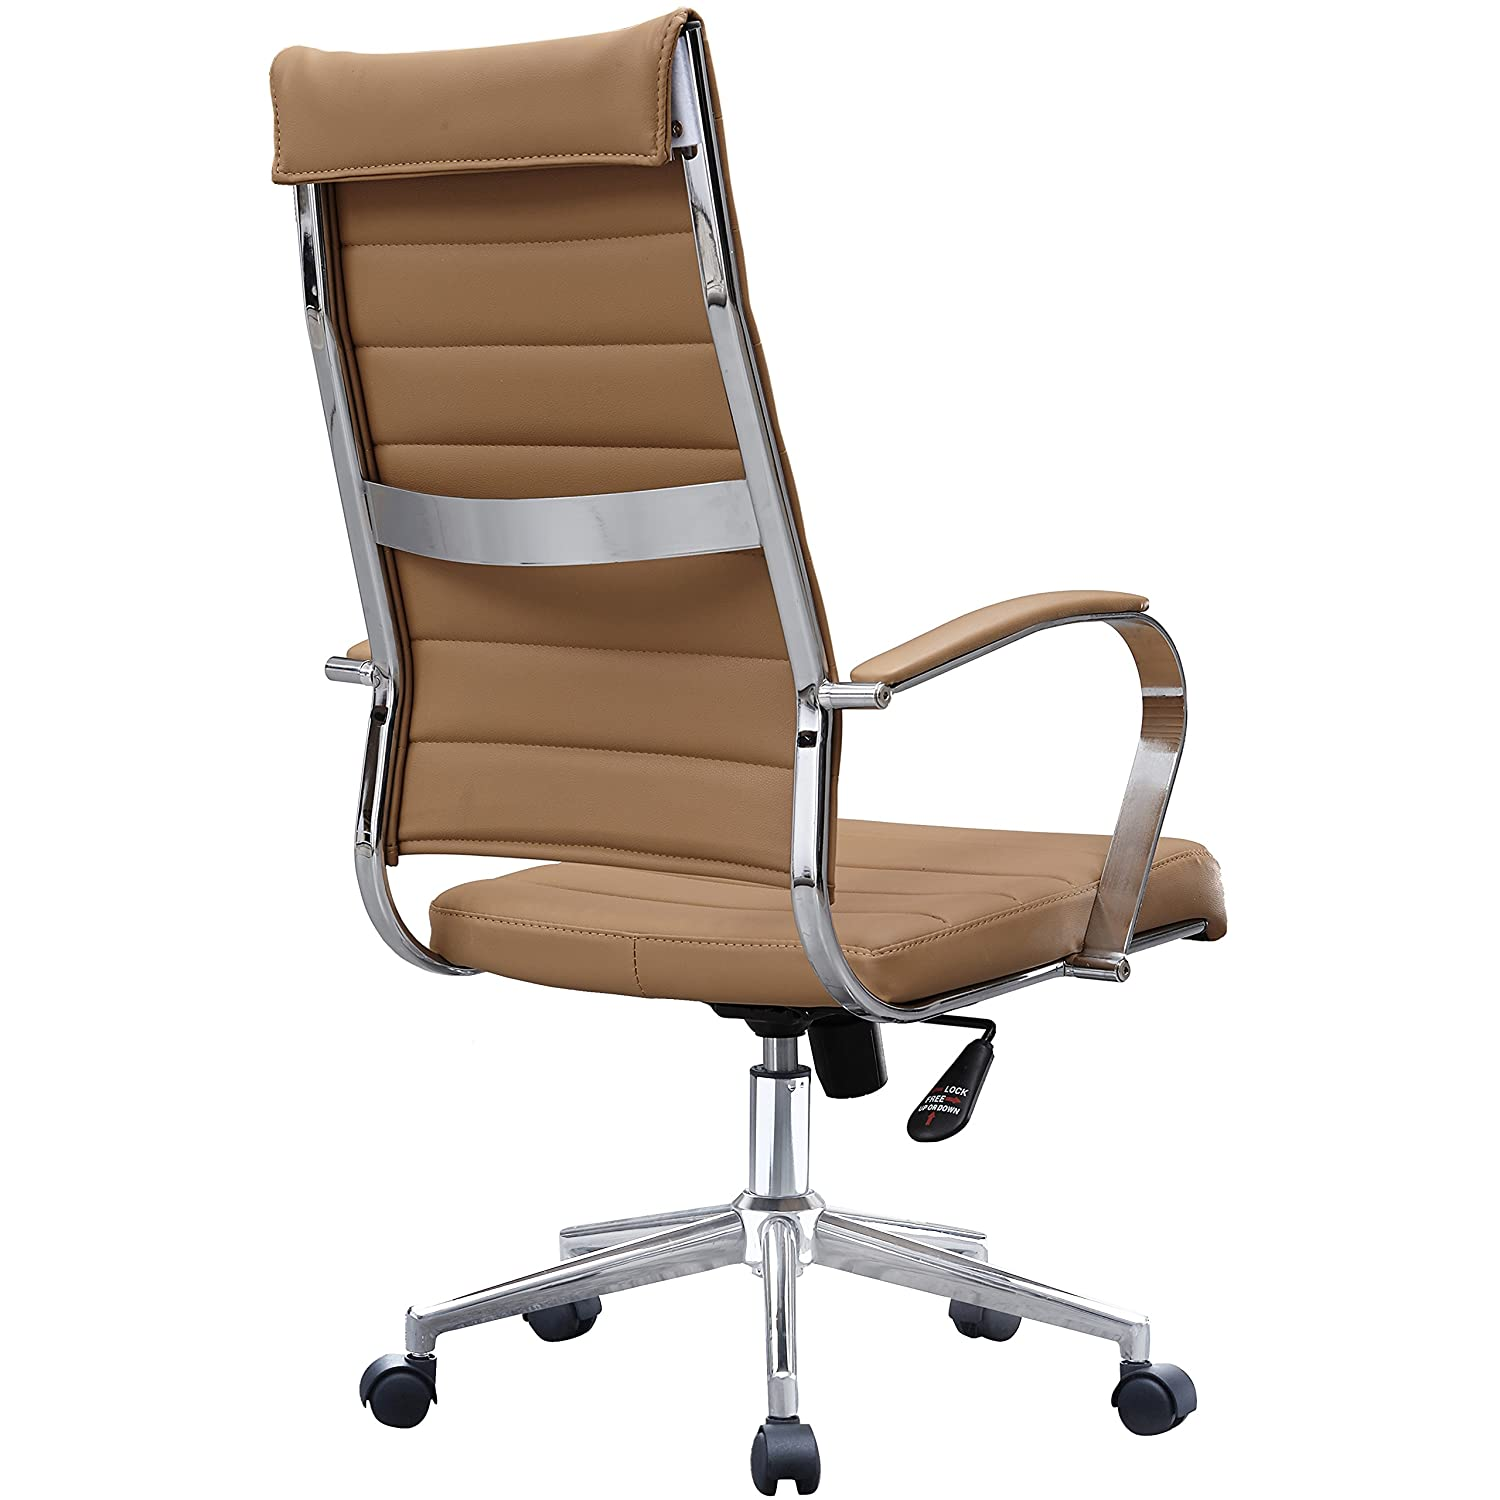 2xhome Brown Modern High Back Tall Ribbed PU Leather Swivel Tilt Adjustable Chair Designer Boss Executive Management Manager Office Conference Room Work Task Computer